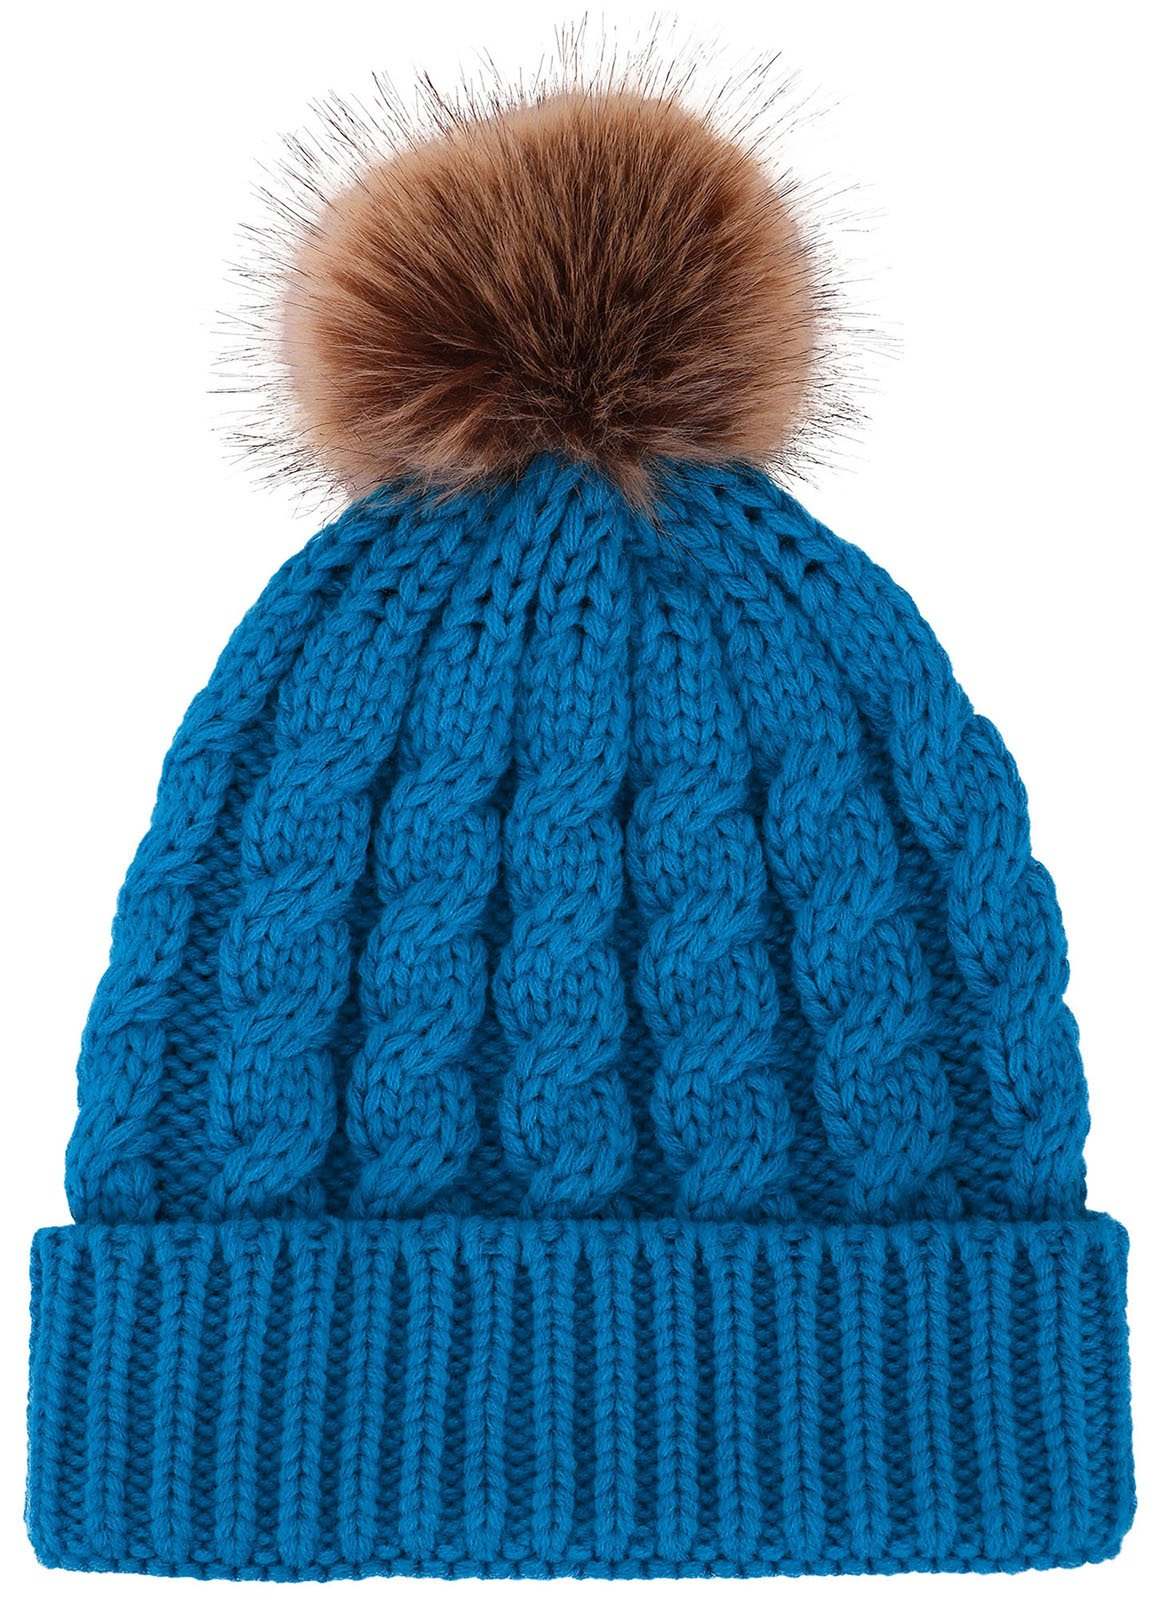 56e4cff866575 Toppers Women Pom Pom Beanie Winter Warm Knitted Beanie Hat Royal Blue